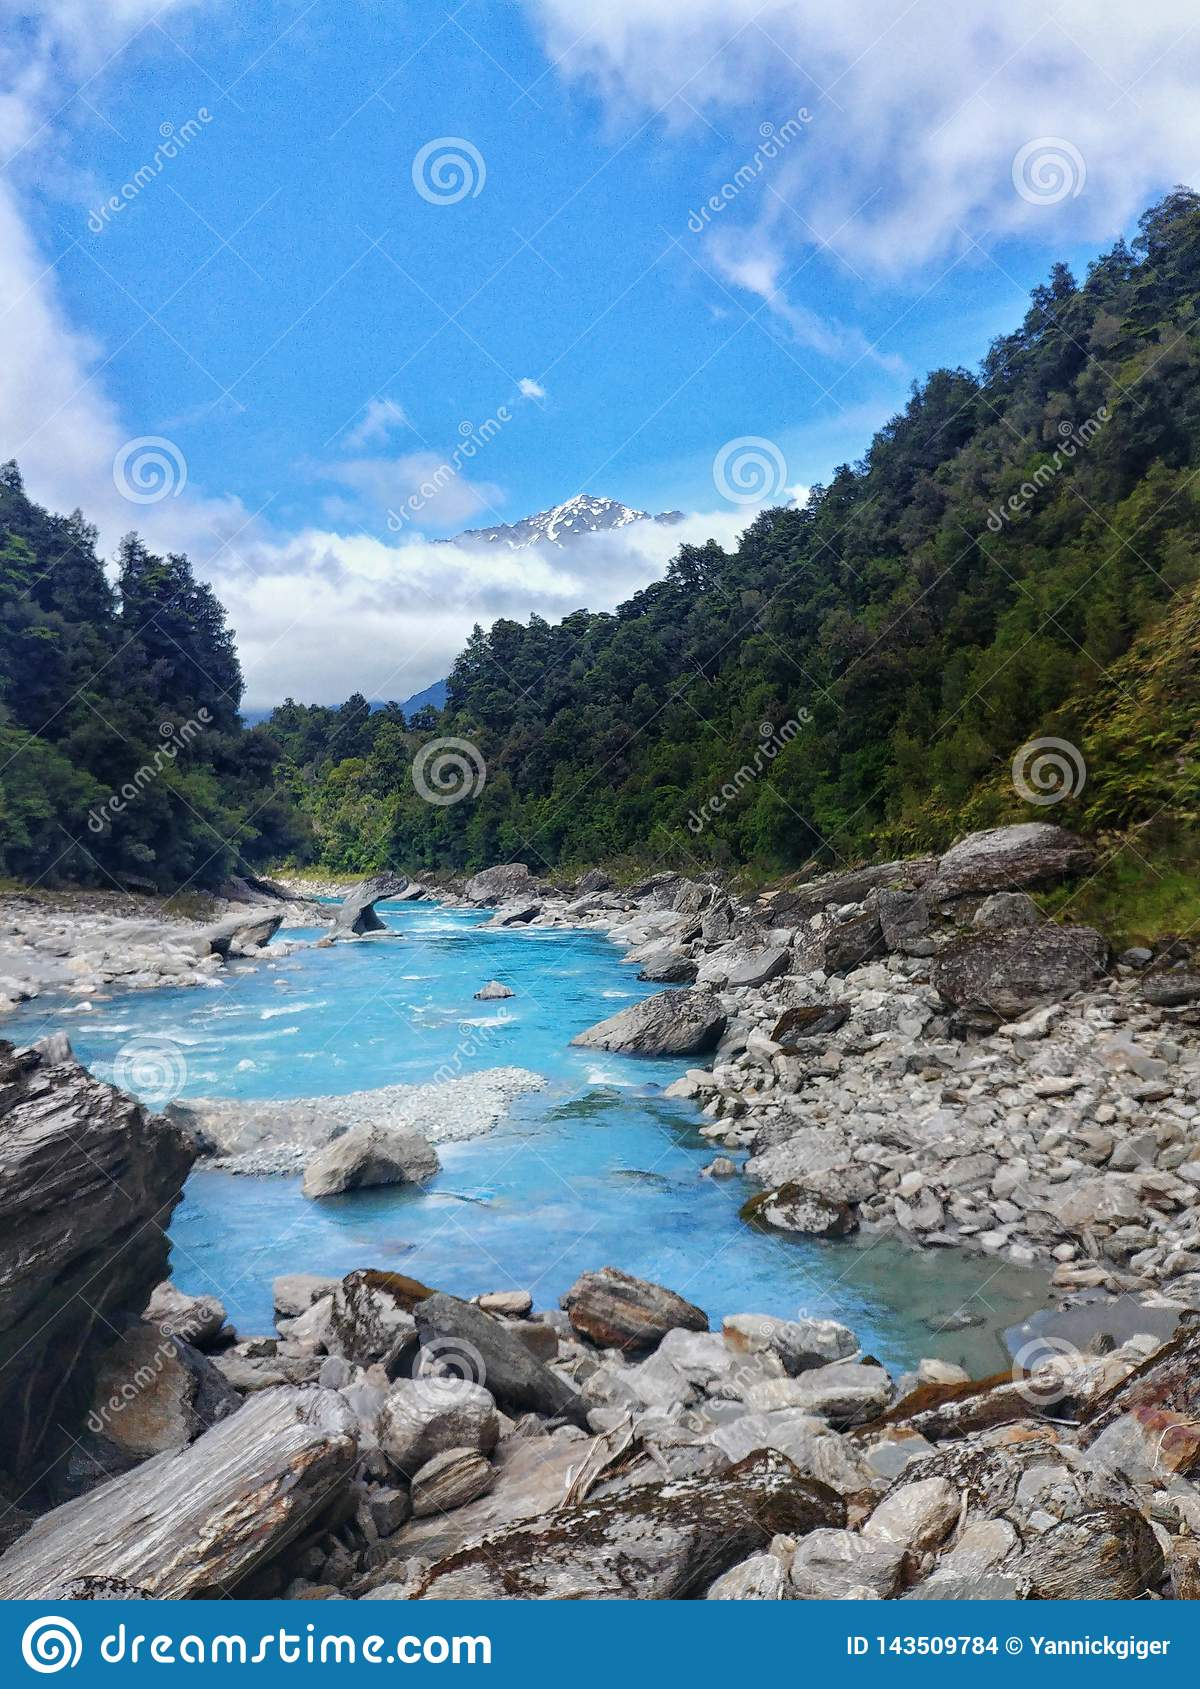 Ice cold river at Copland Track, New Zealand